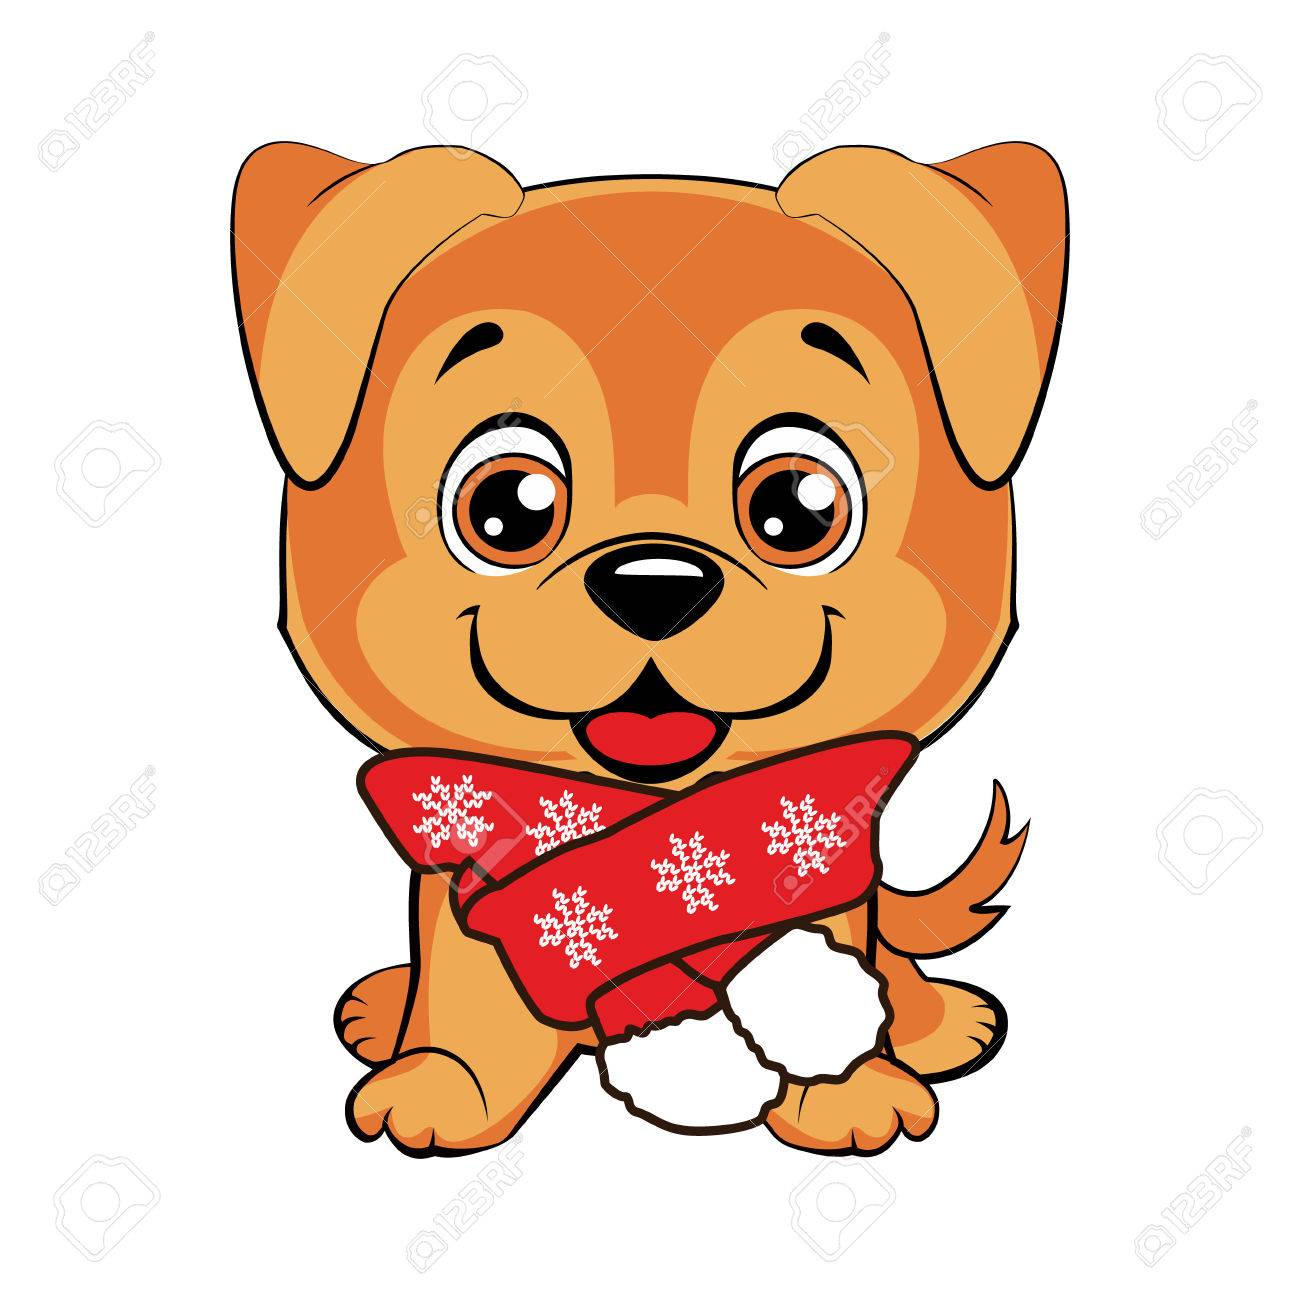 Doggy With Scarf Happy Dog Cartoon Cute Puppies Isolated Royalty Free Cliparts Vectors And Stock Illustration Image 82076628